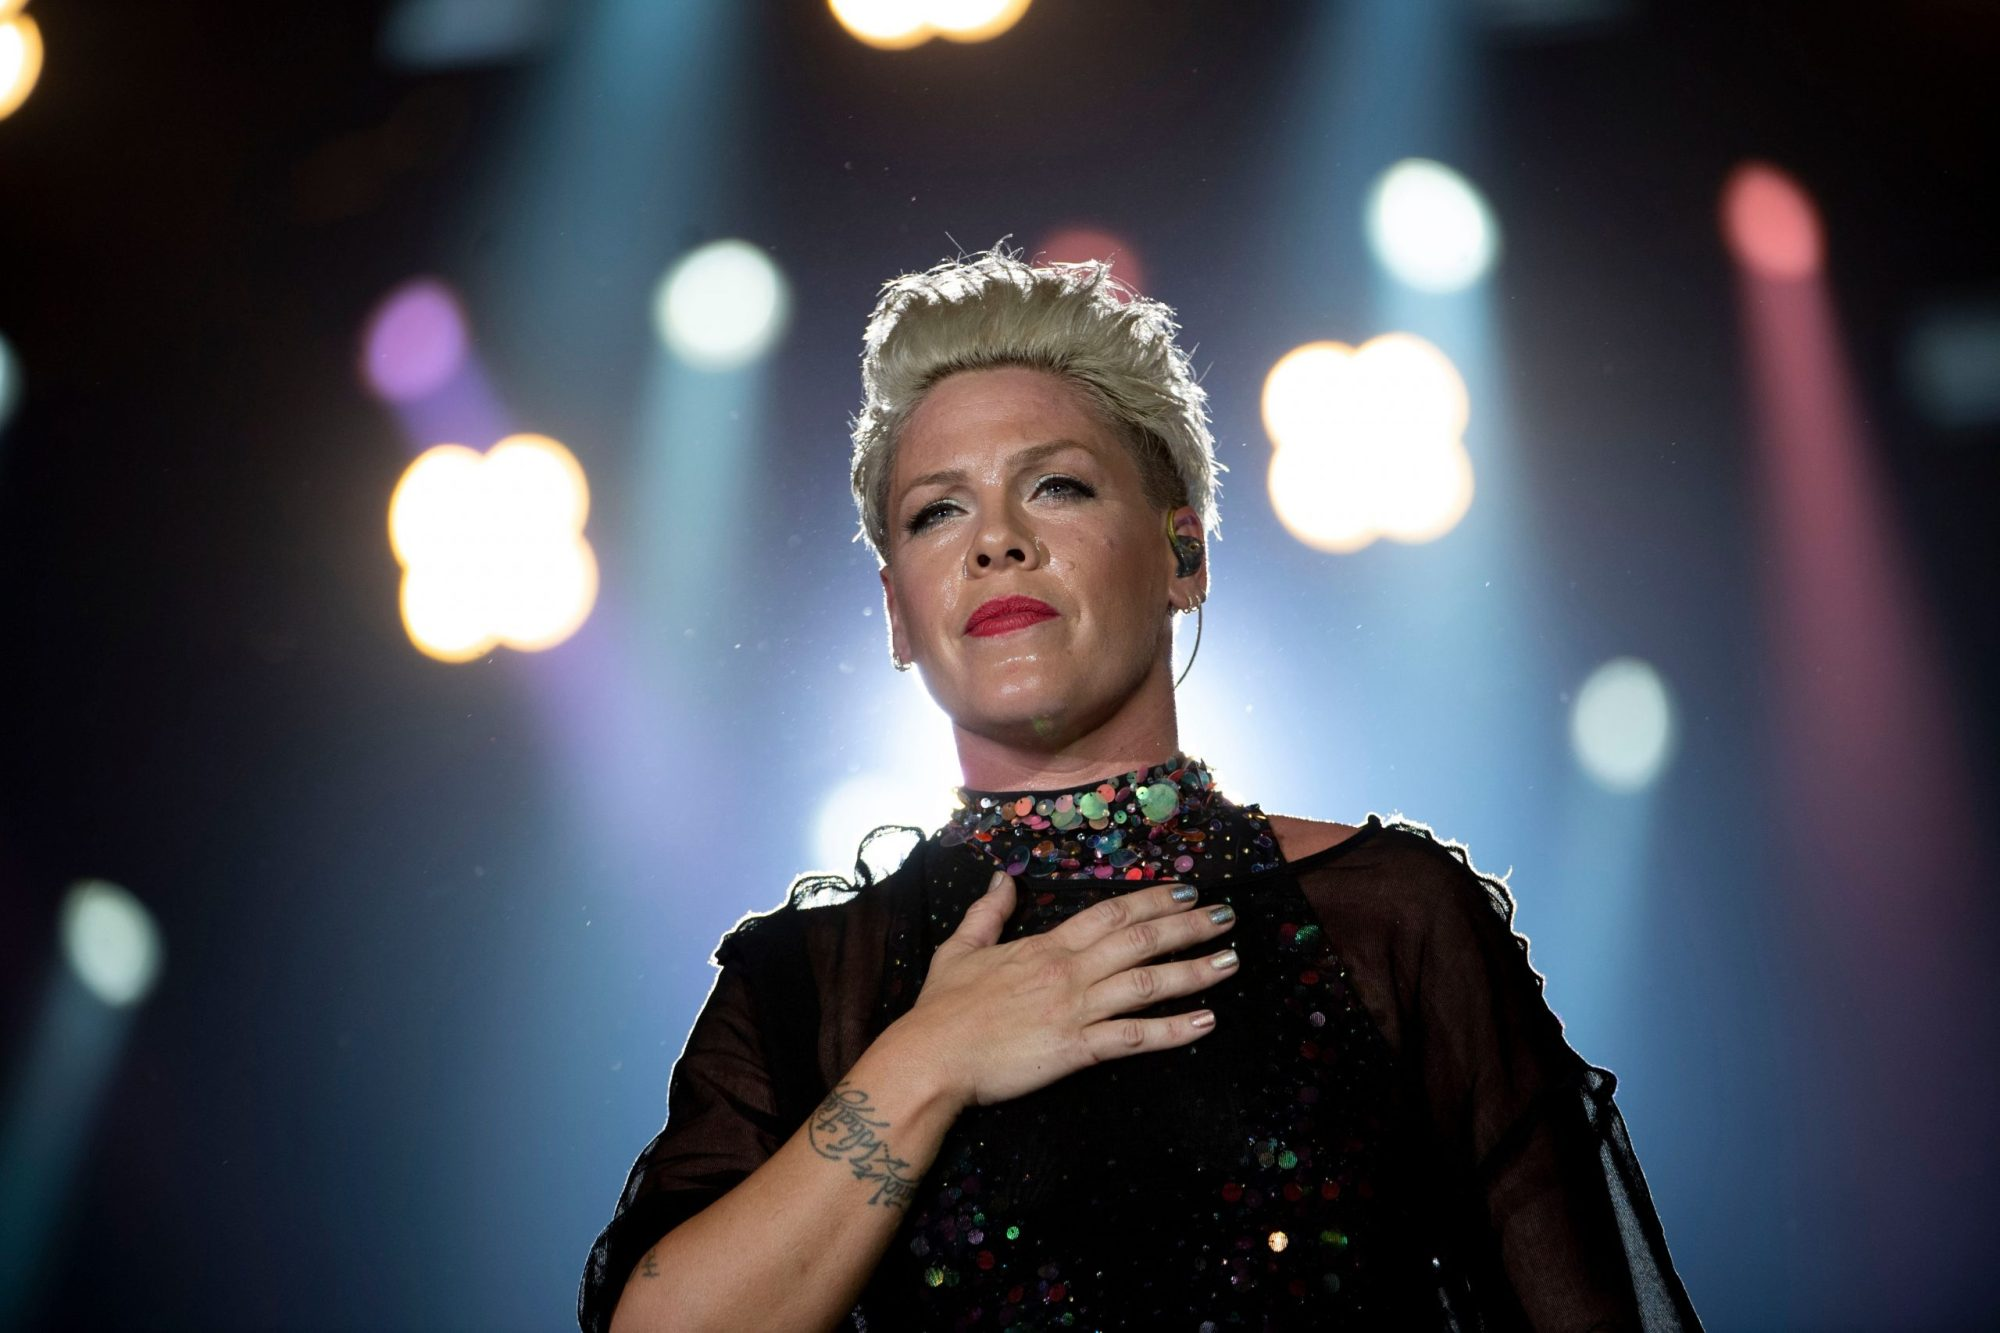 Pink performs during the Rock in Rio festival at Olympic Park in Rio de Janeiro, Brazil, on Oct. 5, 2019. (MAURO PIMENTEL/AFP via Getty Images)